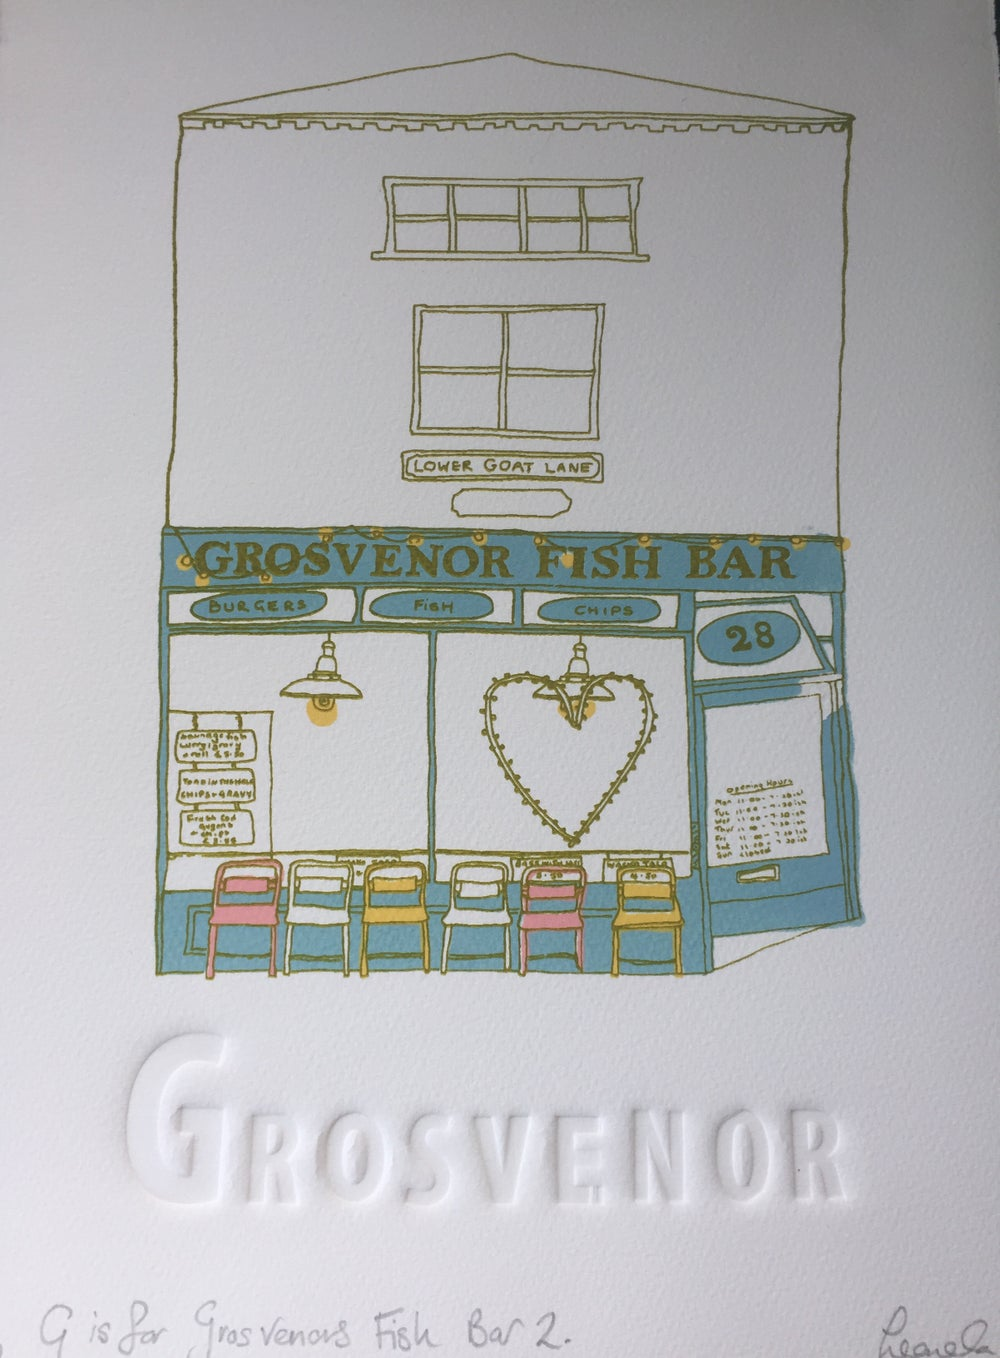 Image of G is for Grosvenor Fish Bar